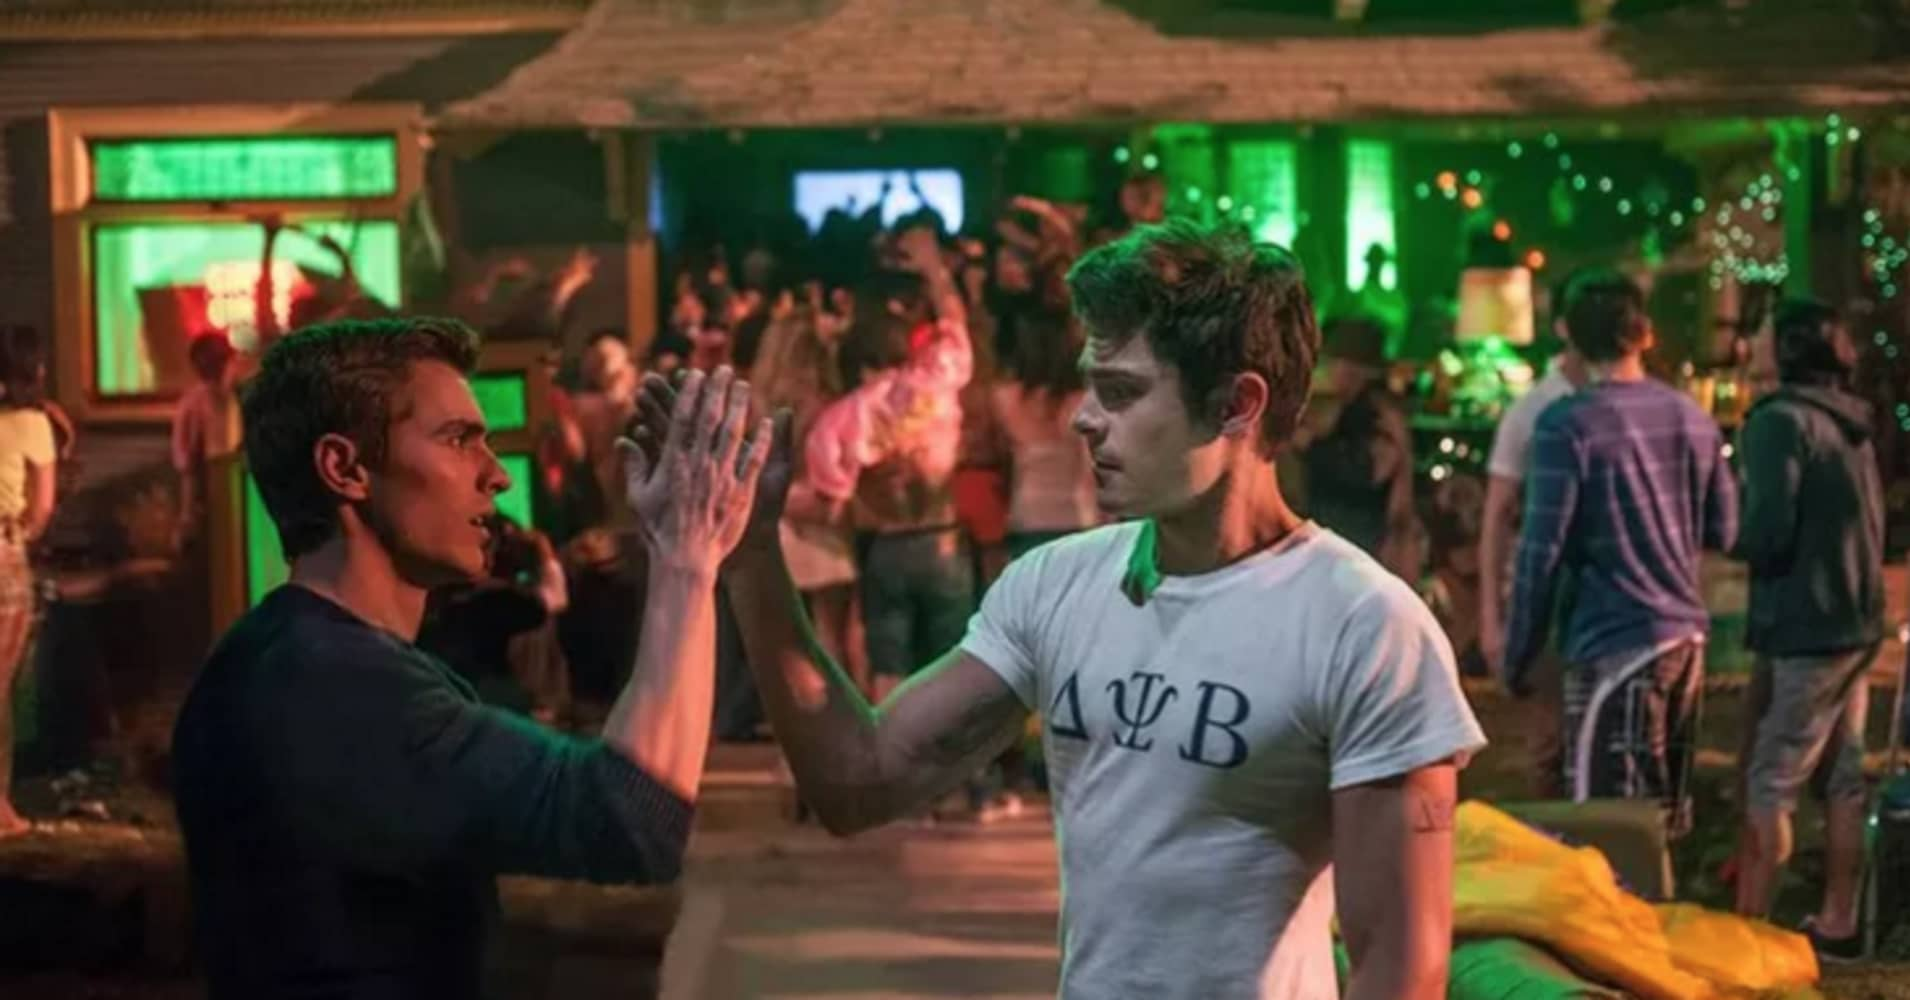 Neighbors movie still featuring Zac Efron and Dave Franco